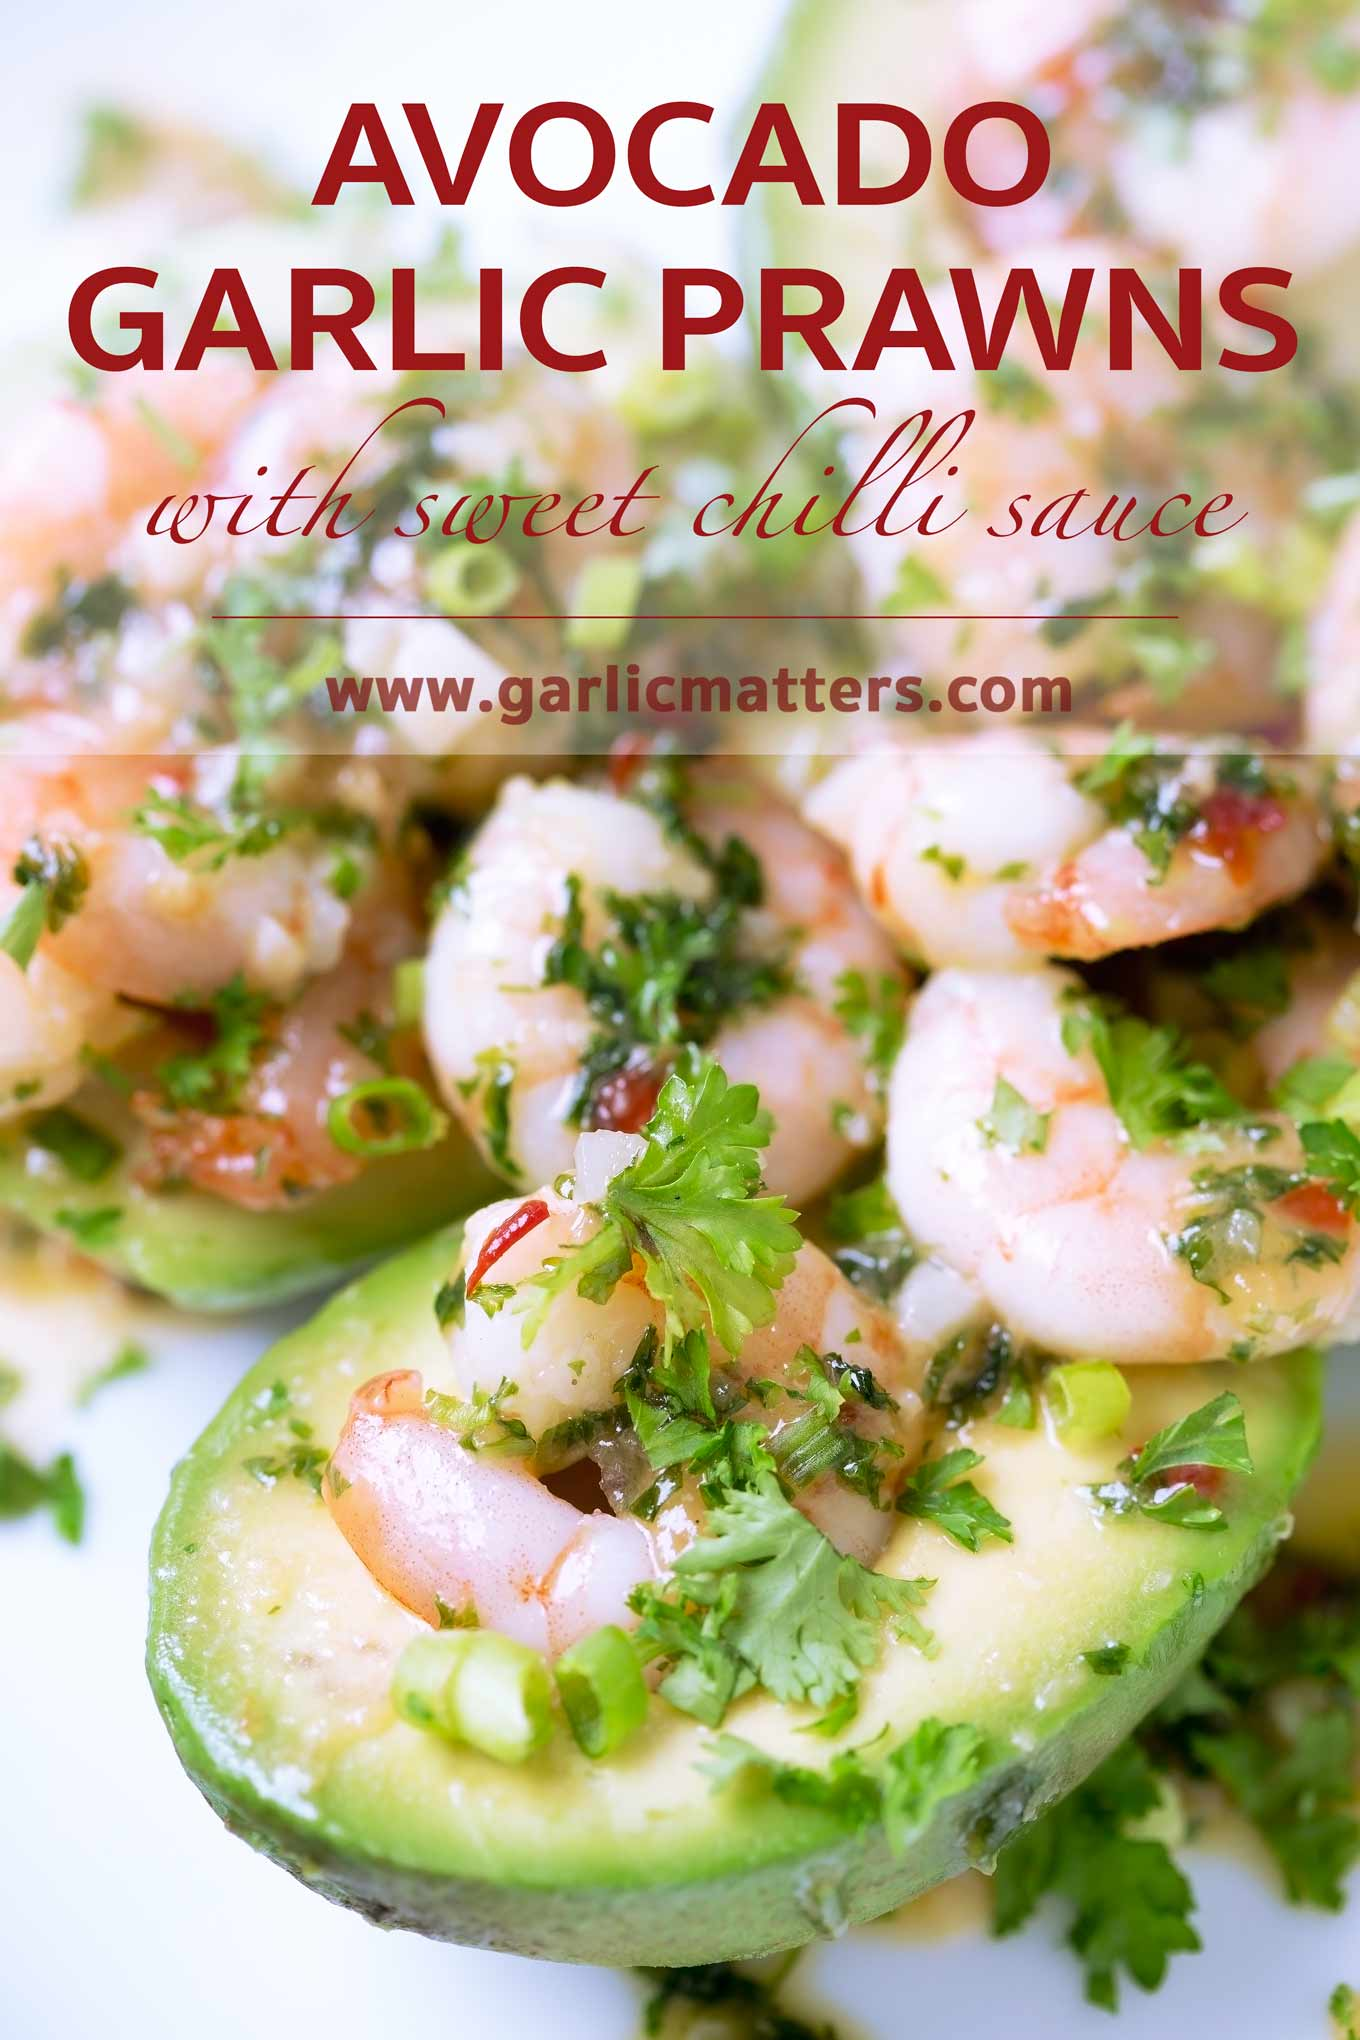 Delicious Garlic Prawns Stuffed Avocado with Sweet Chilli Sauce recipe with only 5 ingredients that can be put together in only 10 min.